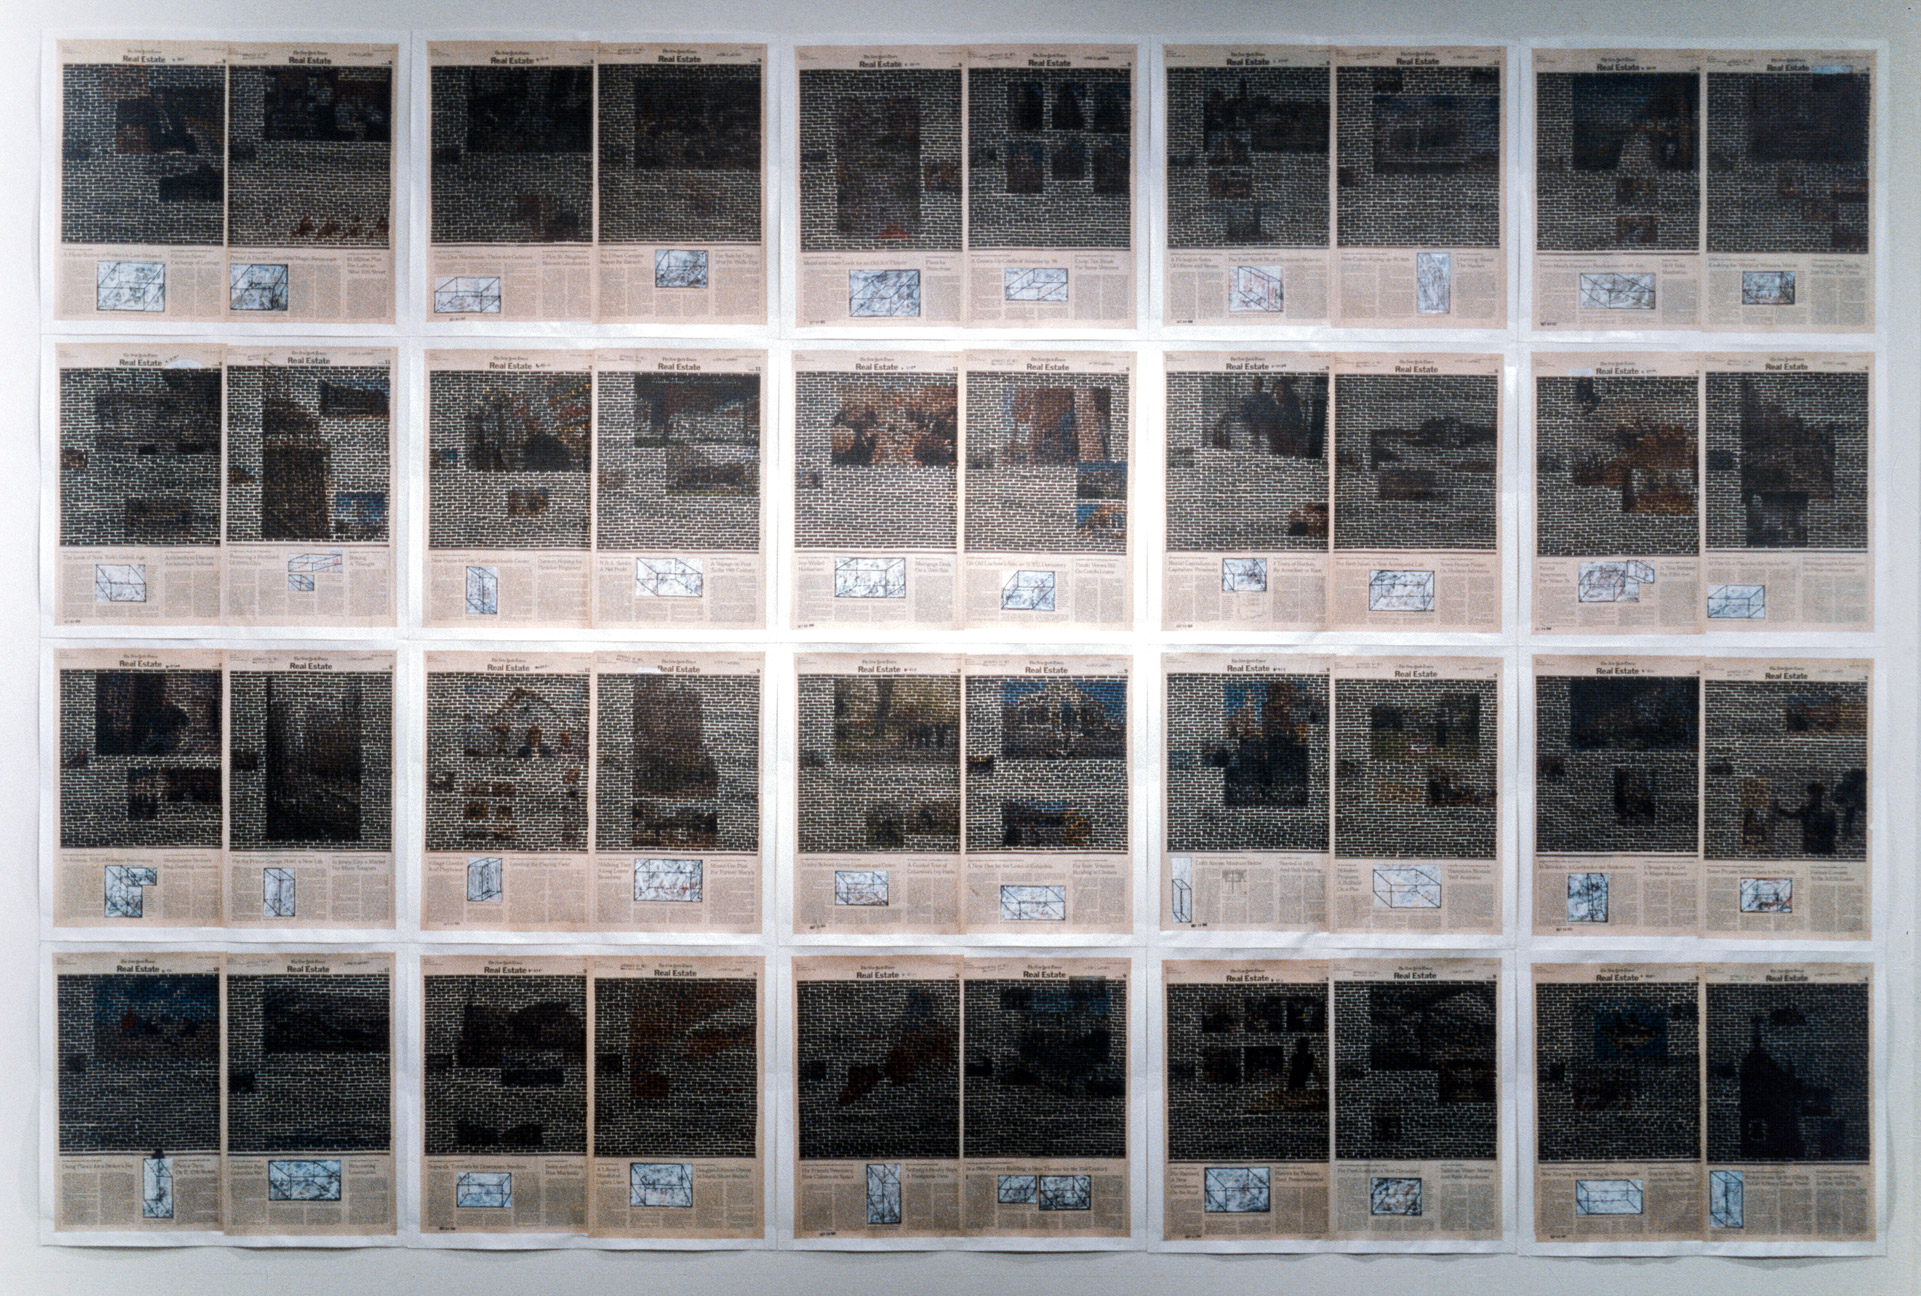 Real Estate , composite view, 1999. Permanent markers and correction fluid on newspaper mounted on canvas.